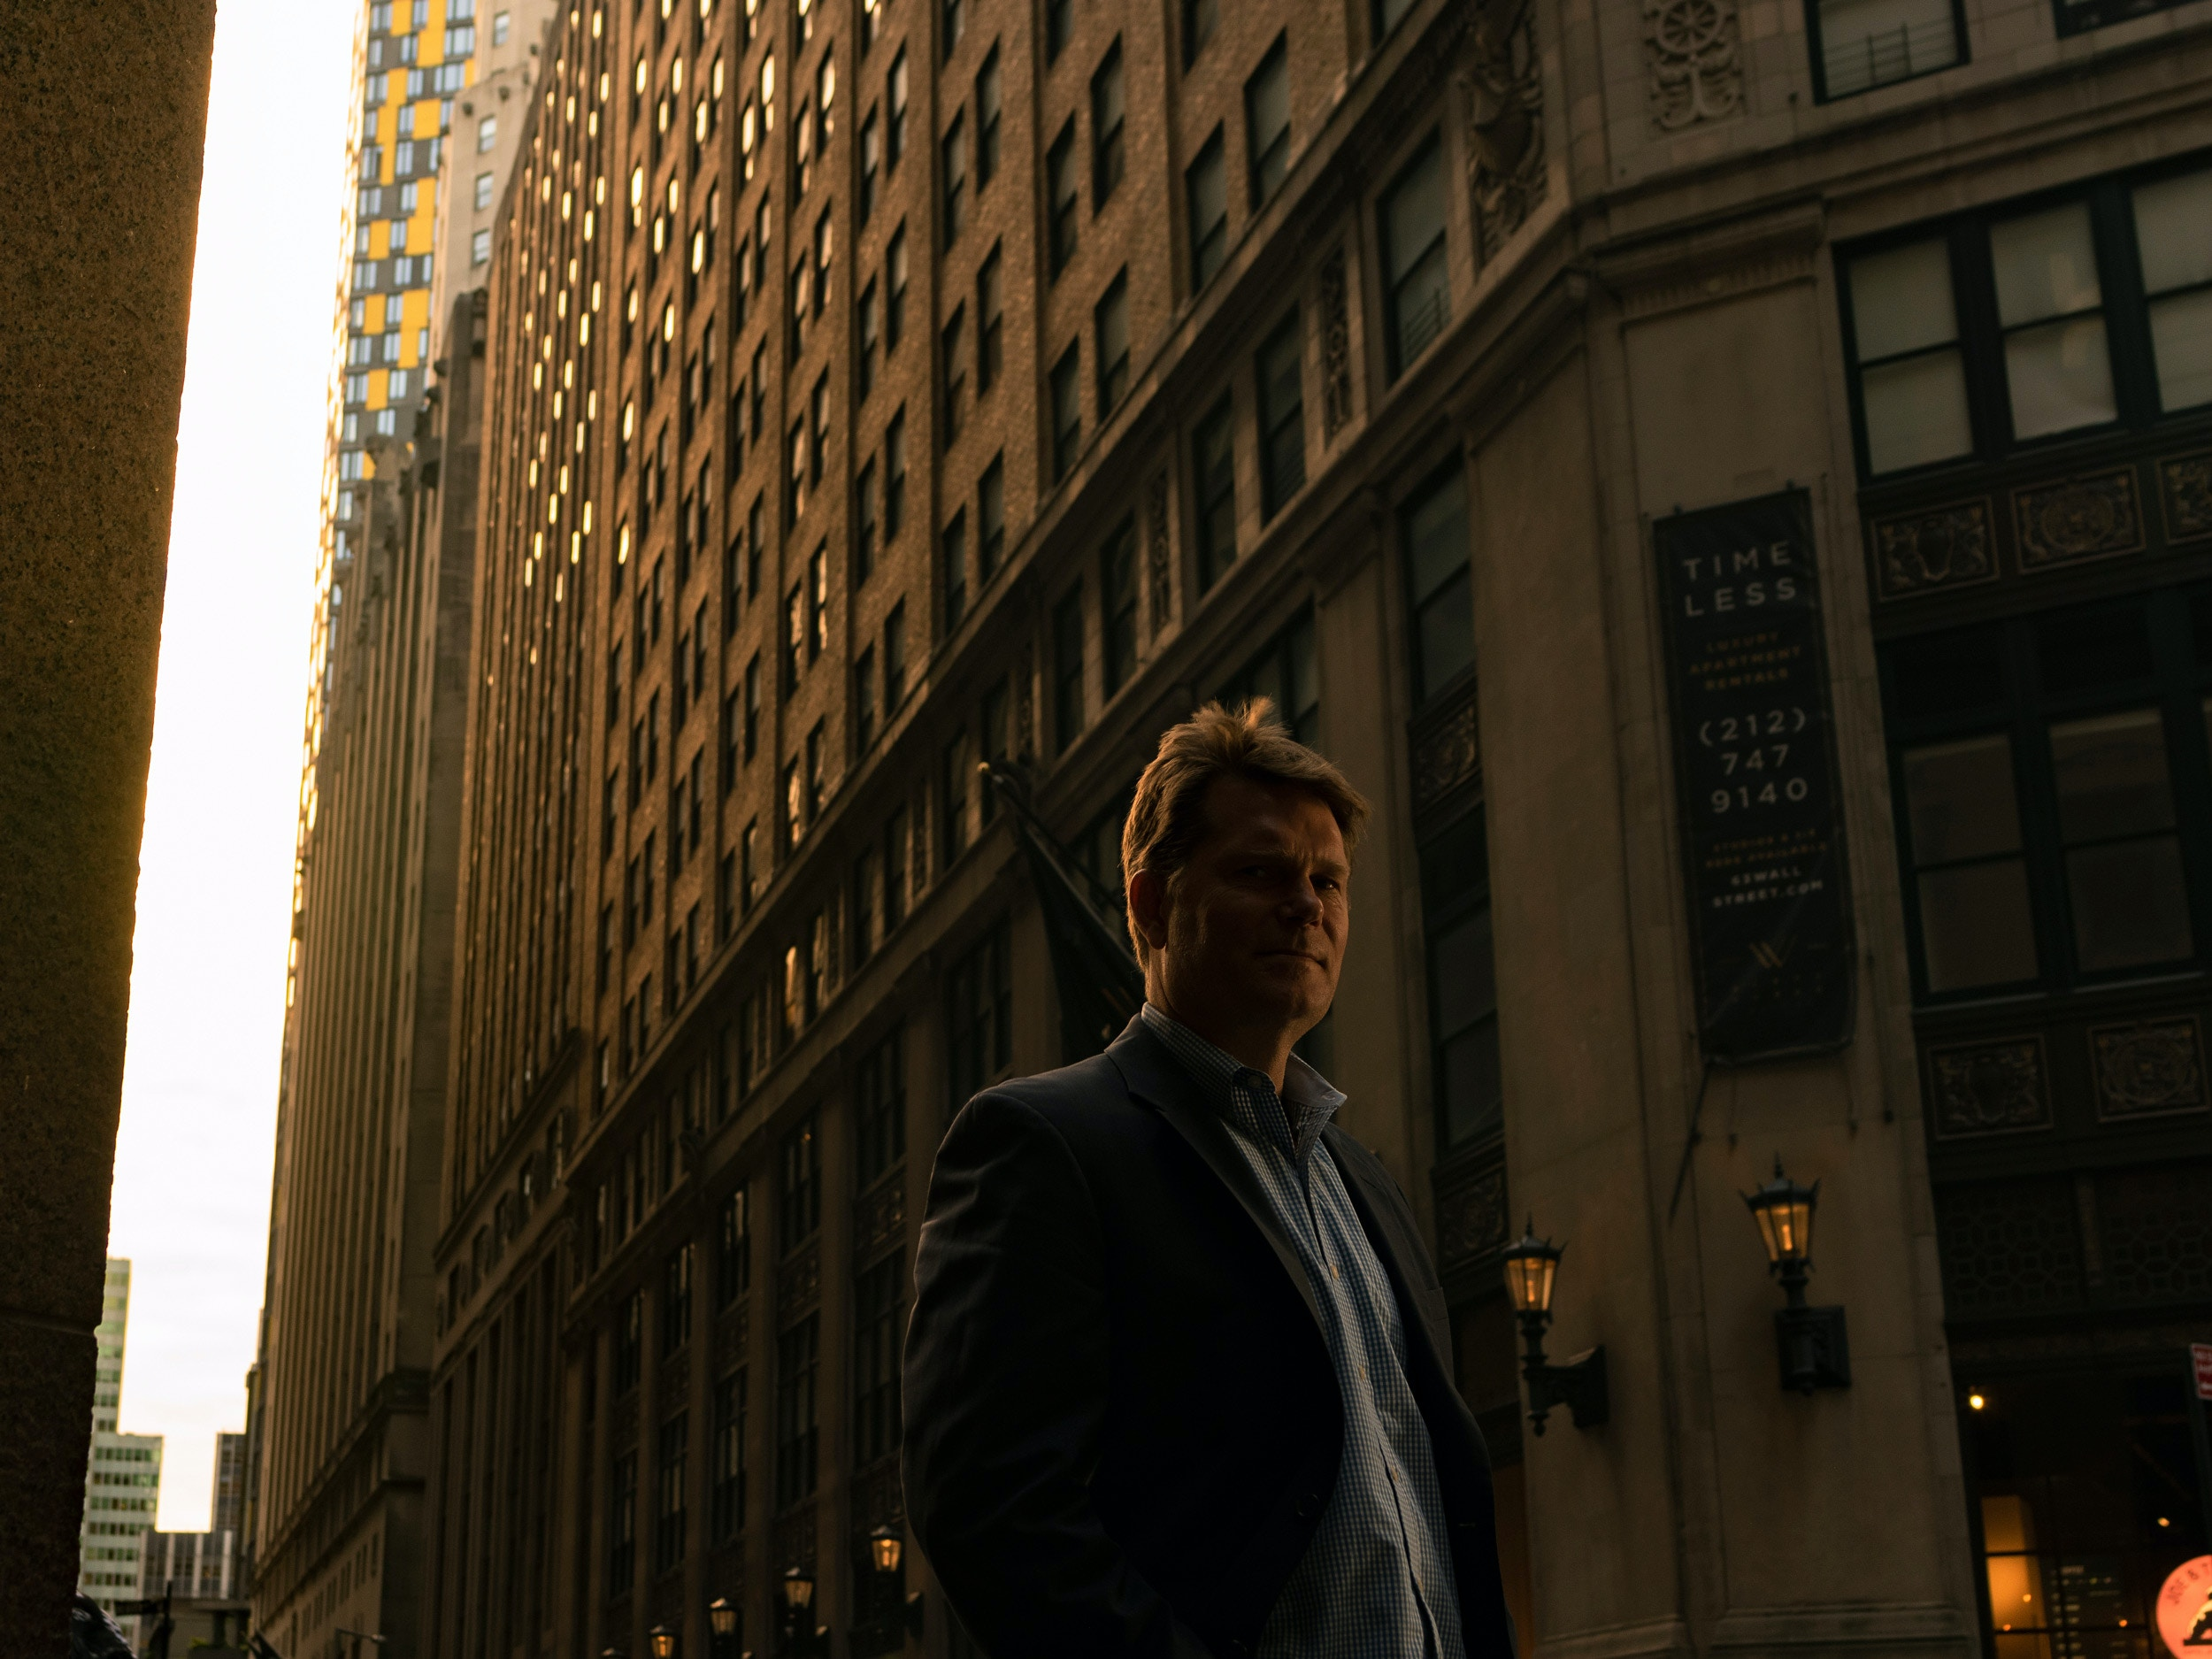 Former FBI agent and writer Michael German photographed near Wall Street downtown Manhattan on September 13, 2019. Sasha Maslov for the Intercept